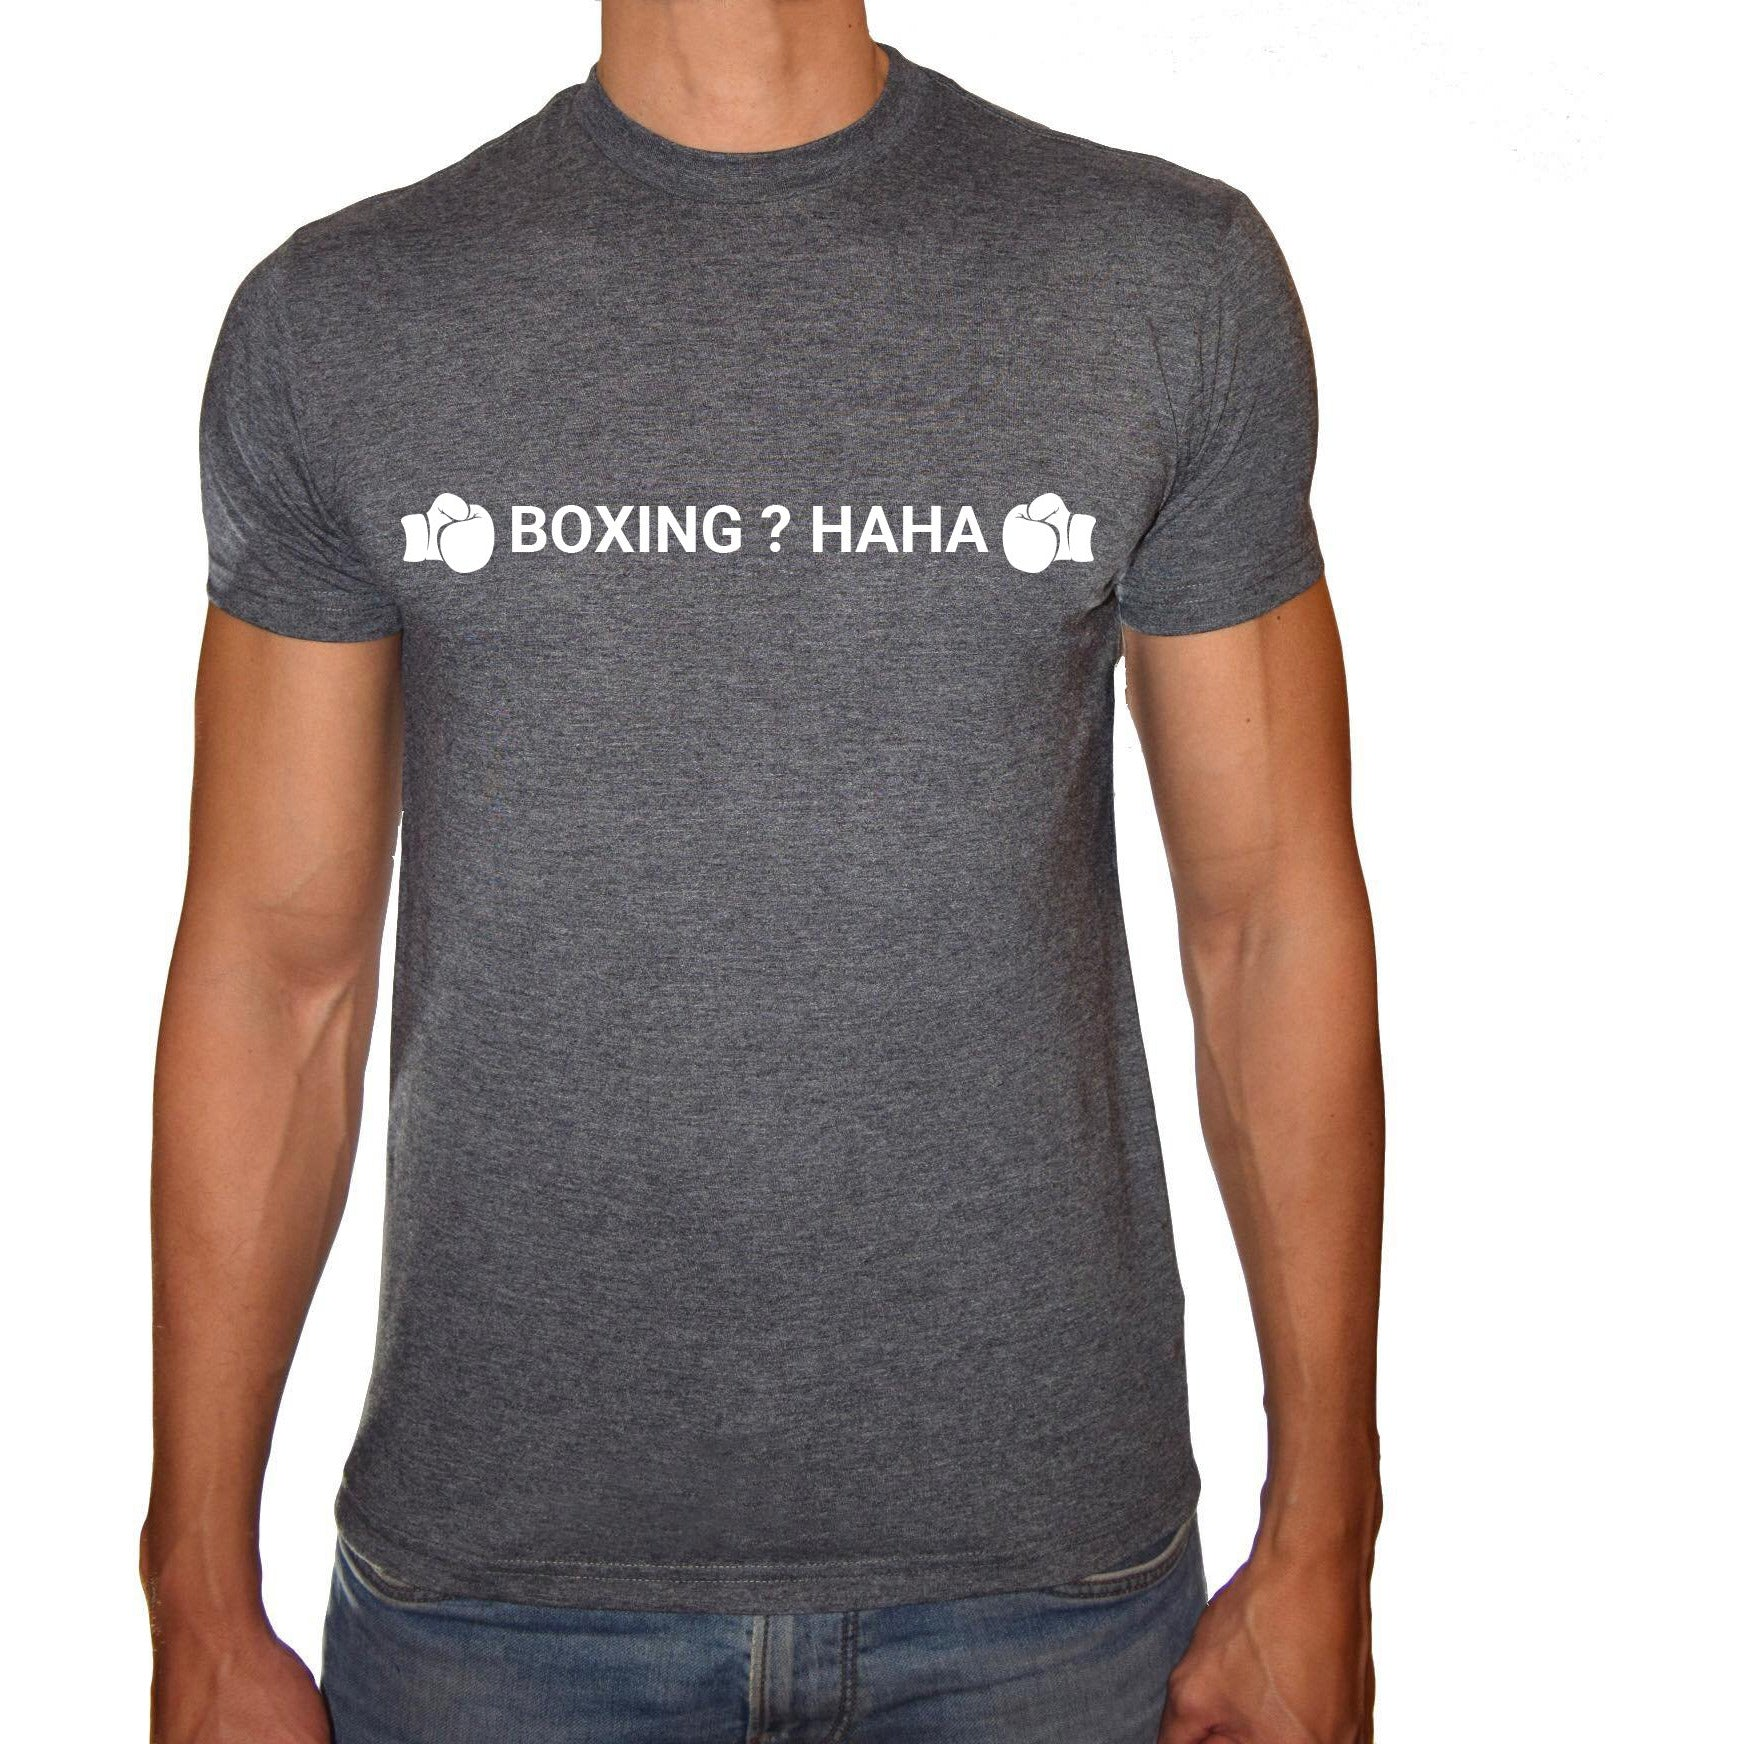 Phoenix CHARCOAL Round Neck Printed T-Shirt Men - Boxing hahah